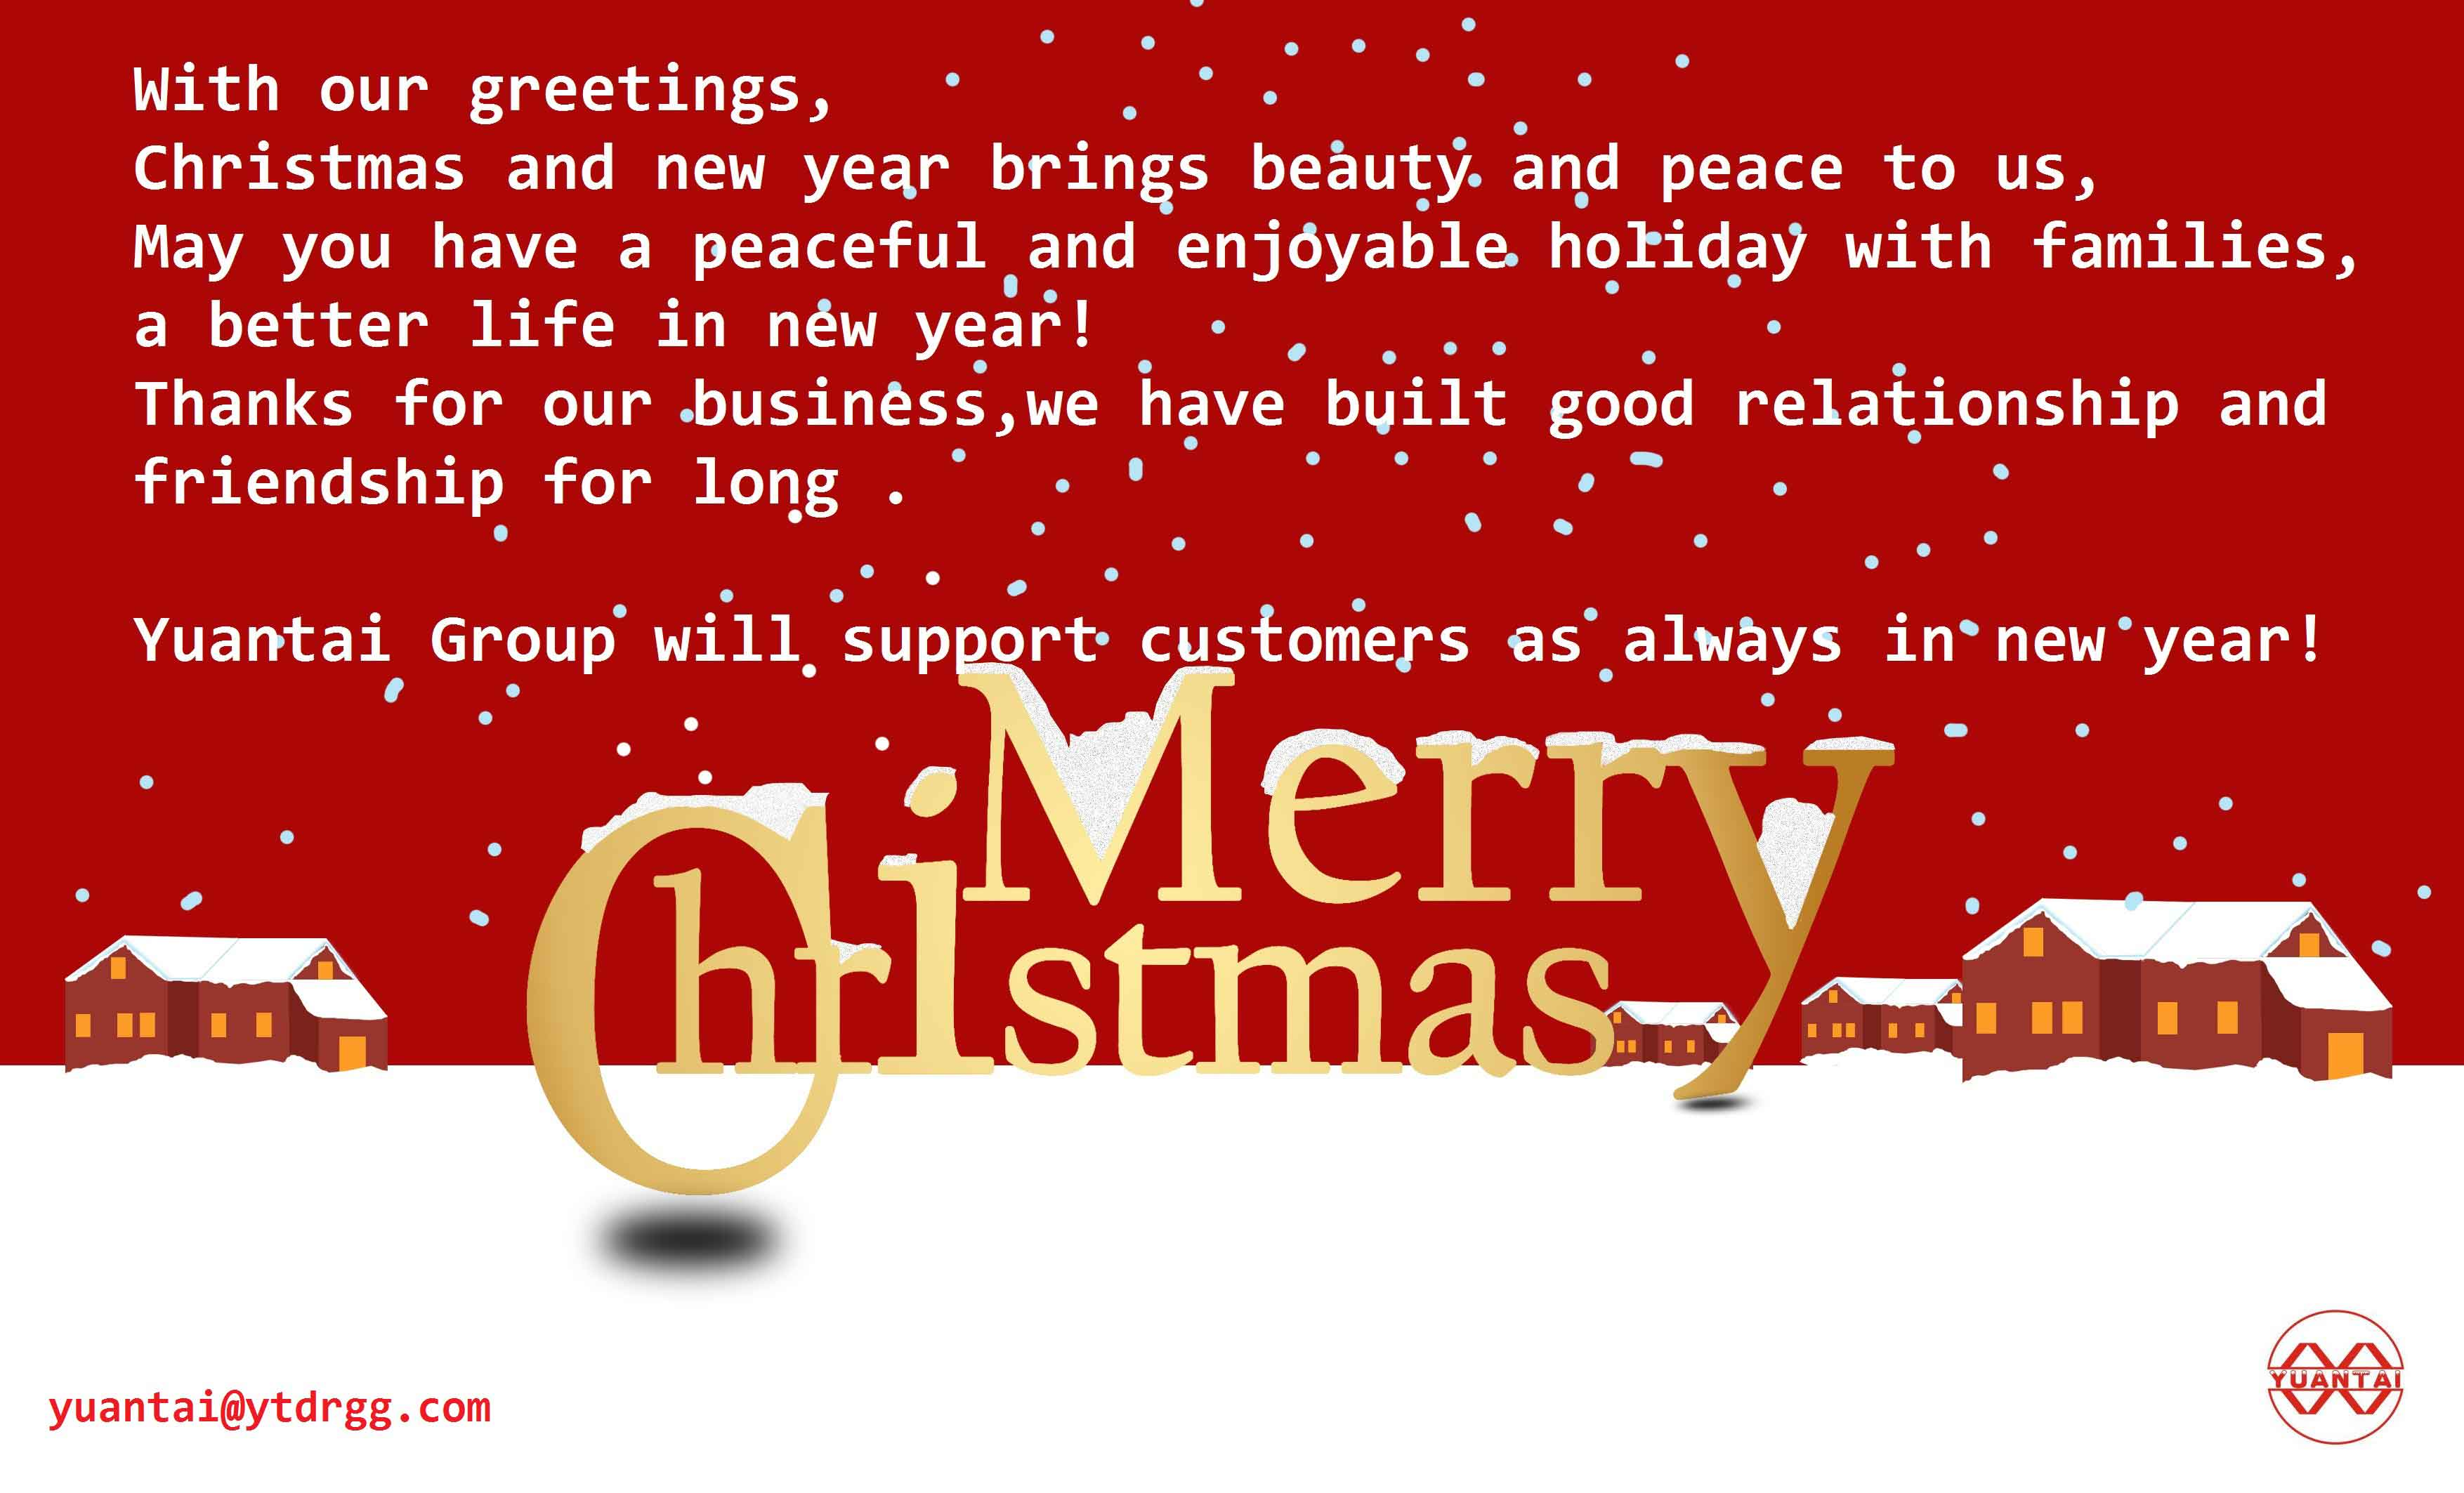 Greetings to all our customers in new year: